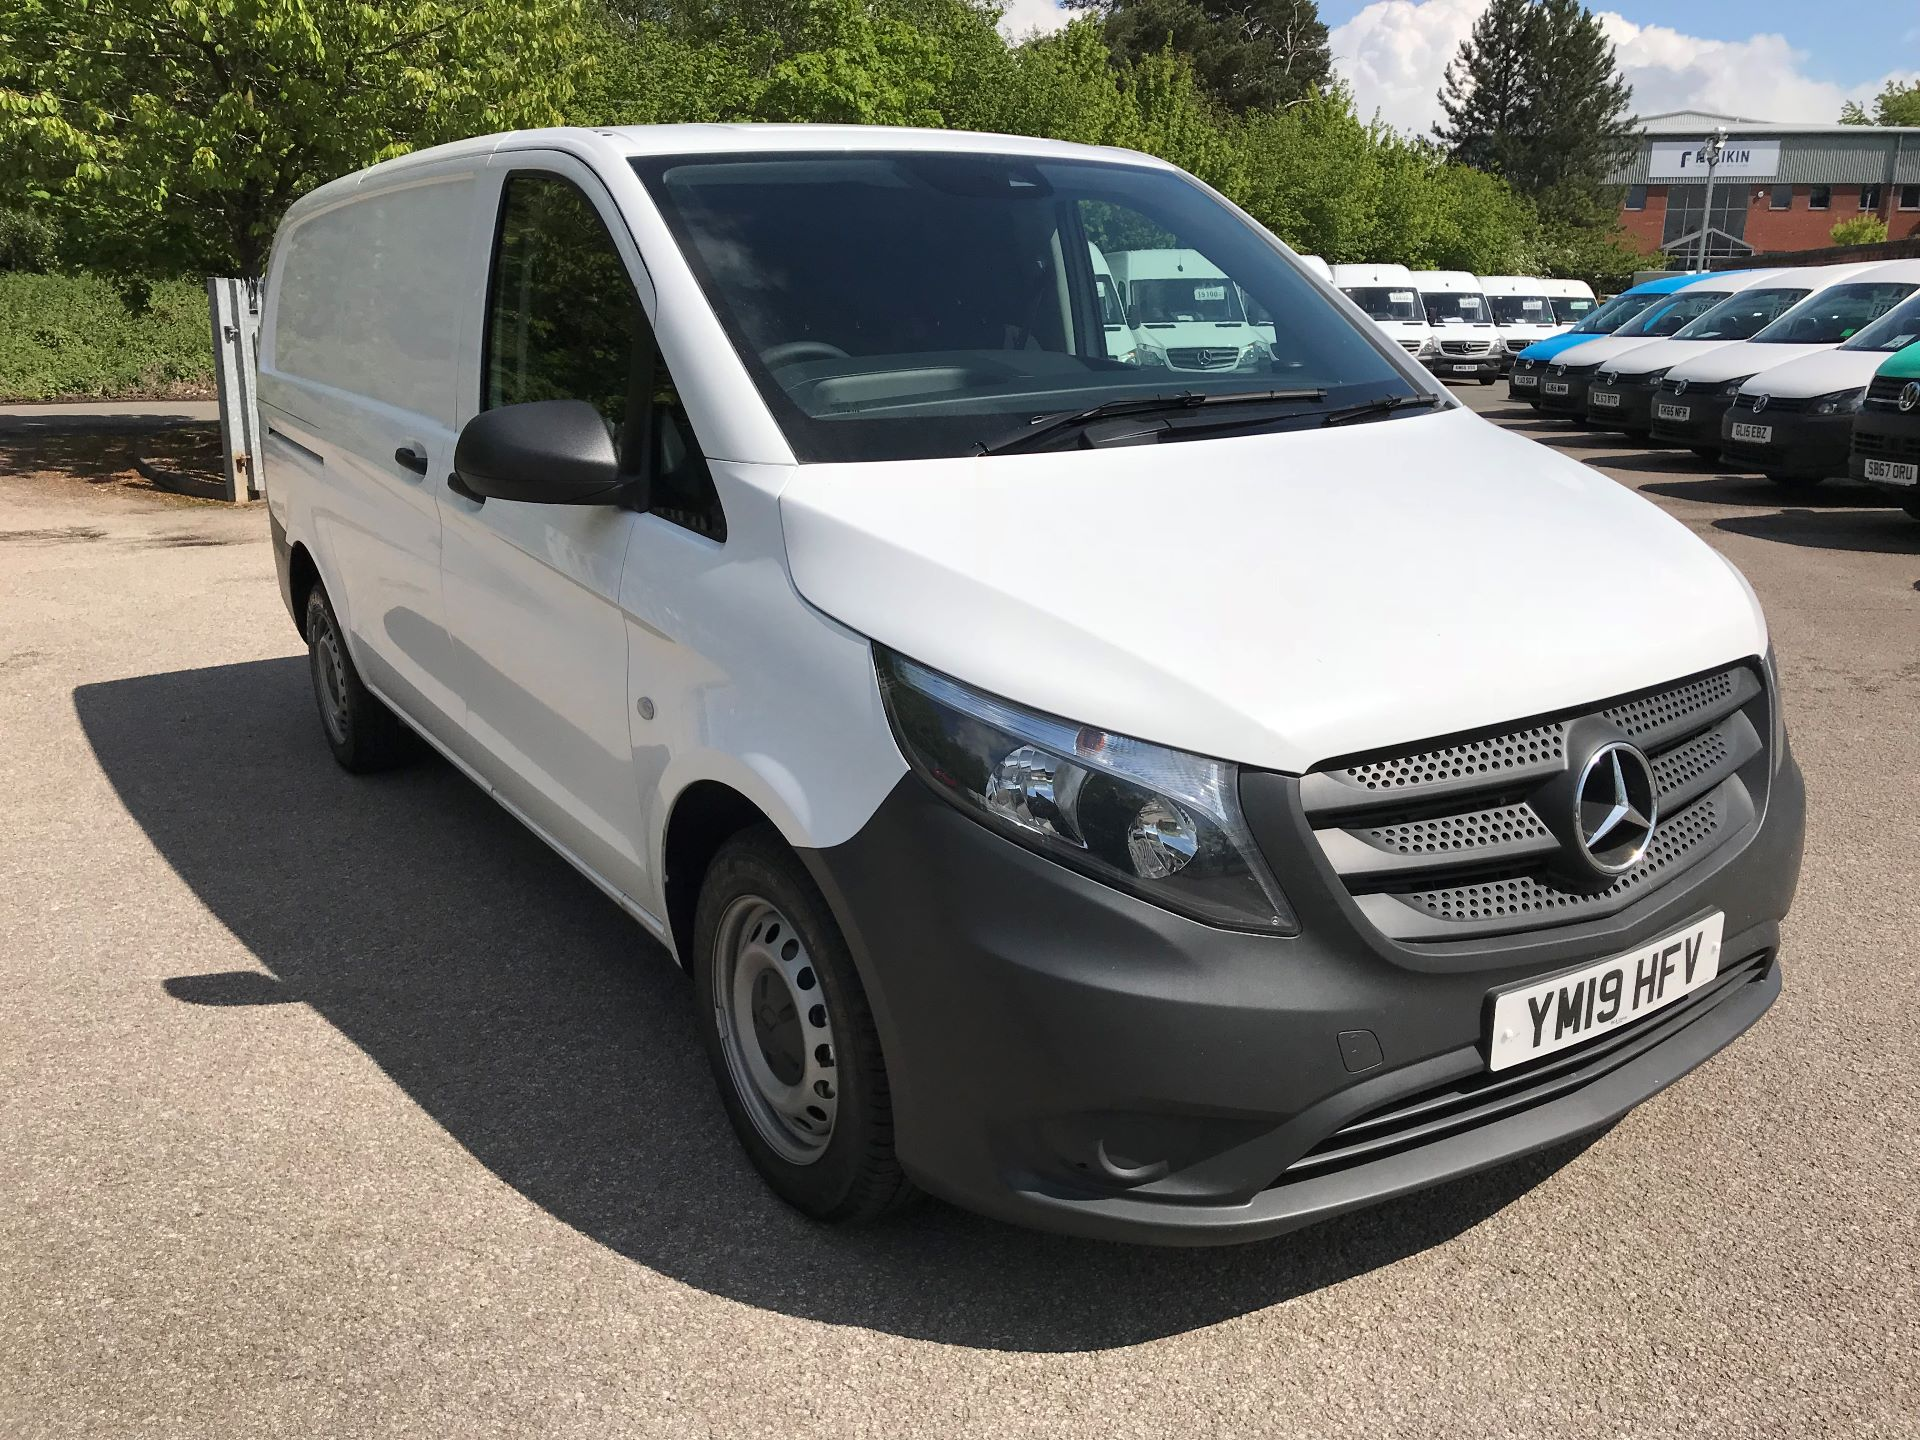 2019 Mercedes-Benz Vito 111Cdi Van Euro 6 Massive specification A/C (YM19HFV)